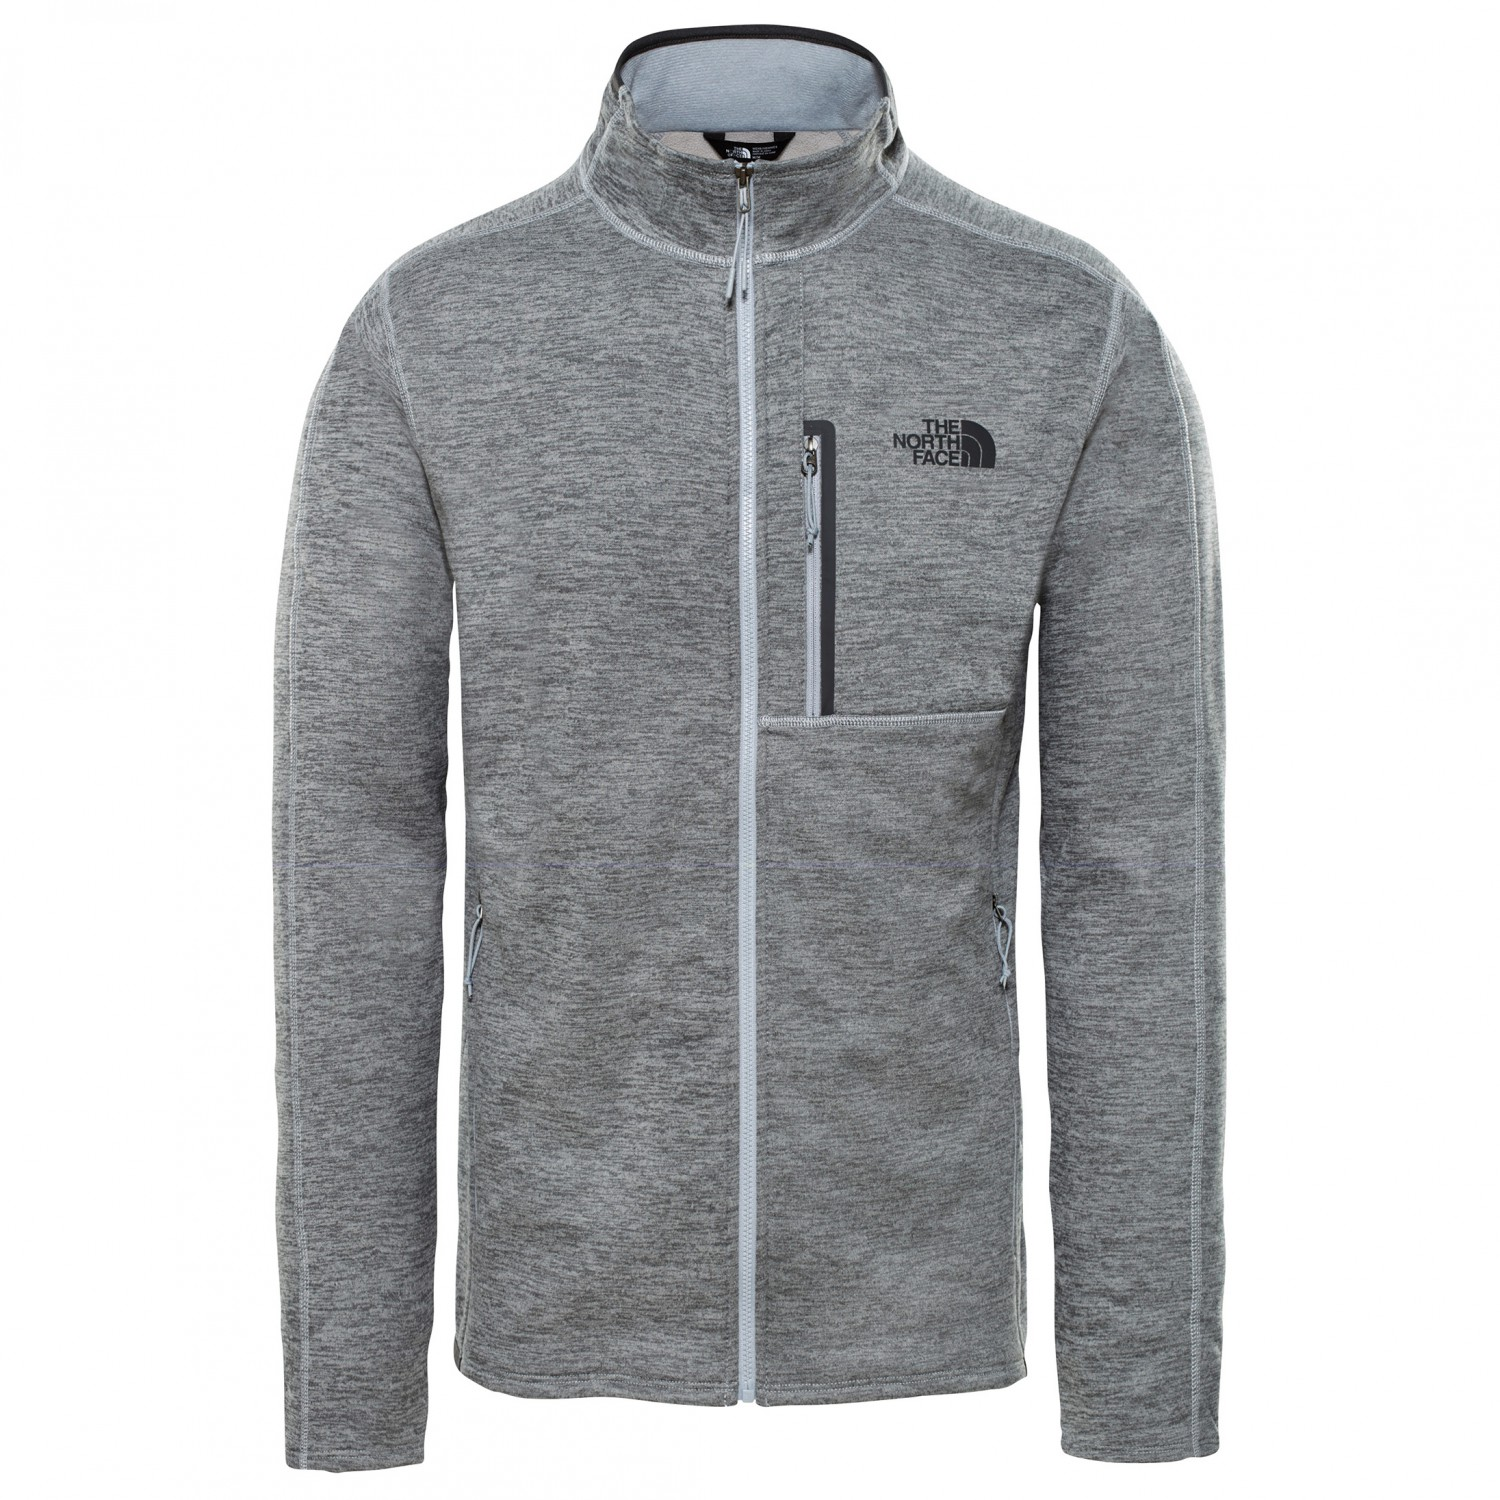 The North Face Canyonlands Fullzip - Veste